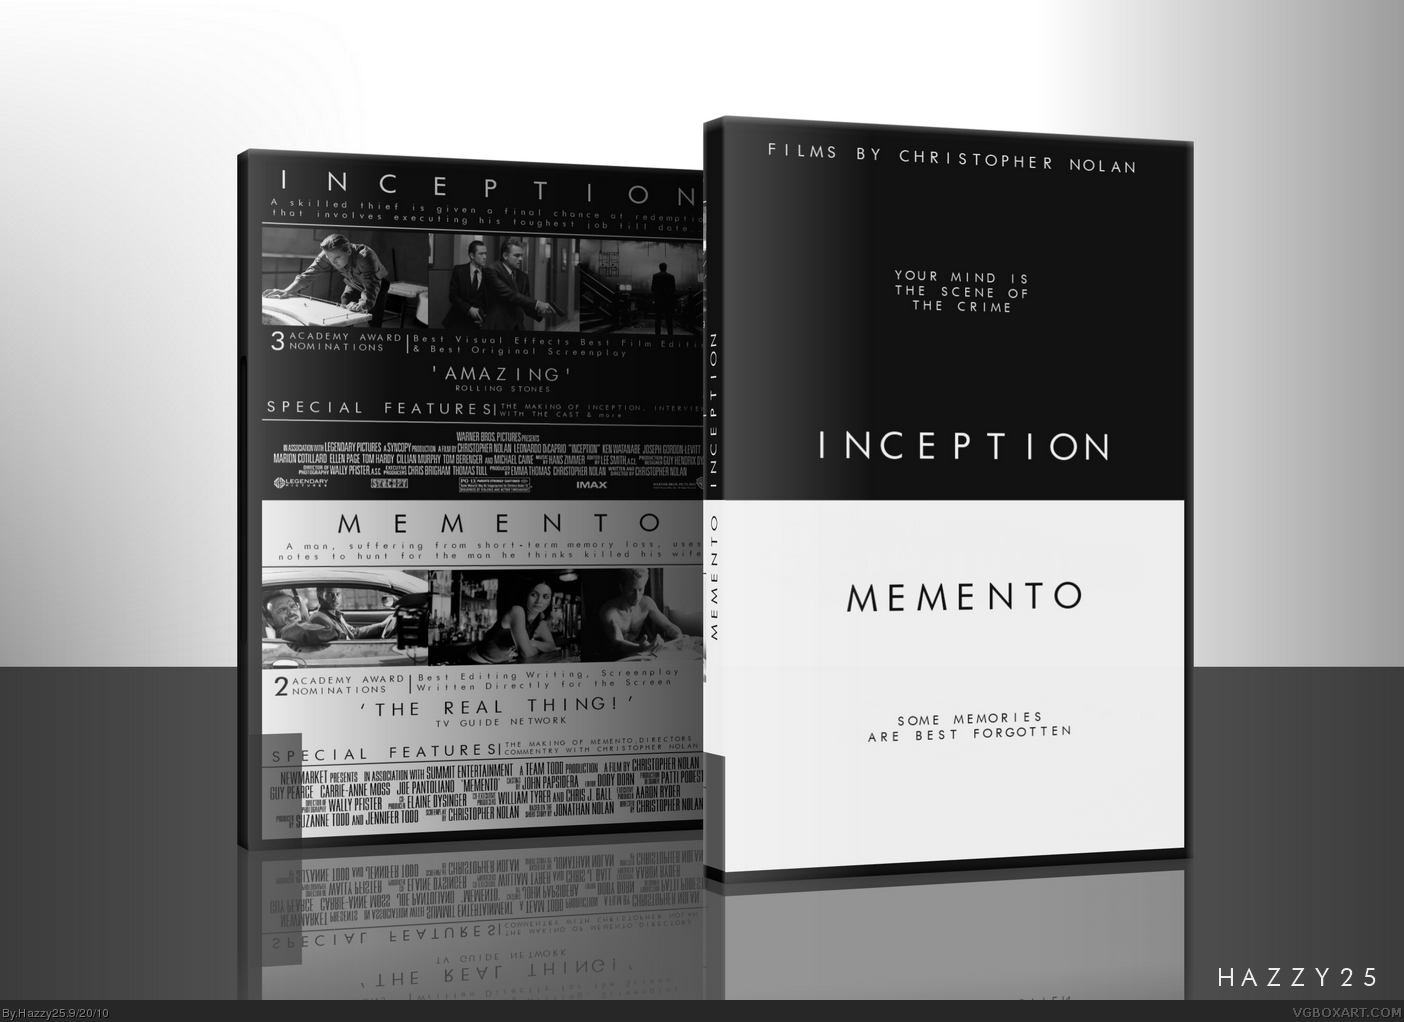 Inception Dvd Cover Art Inception / Memento (D...